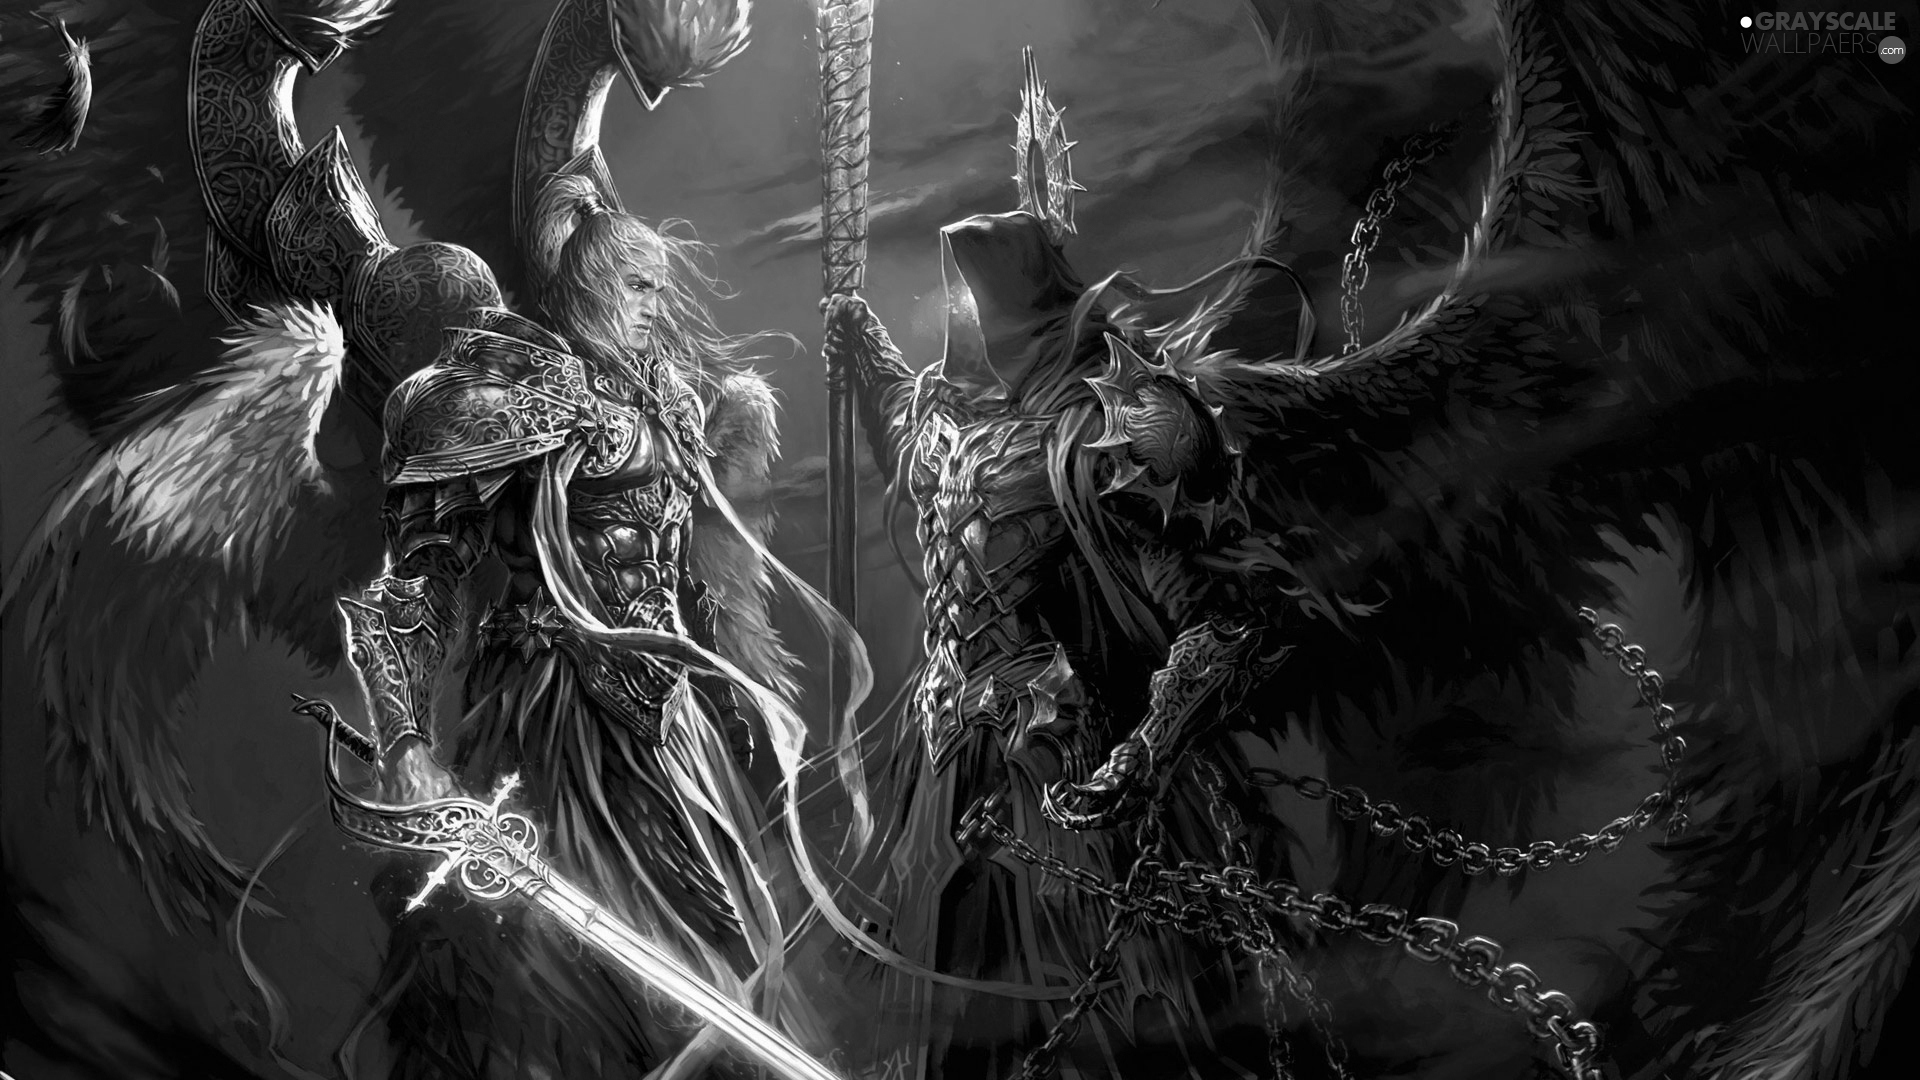 Grayscale Might And Magic Heroes VI, Archangel Michael - 1920x1080